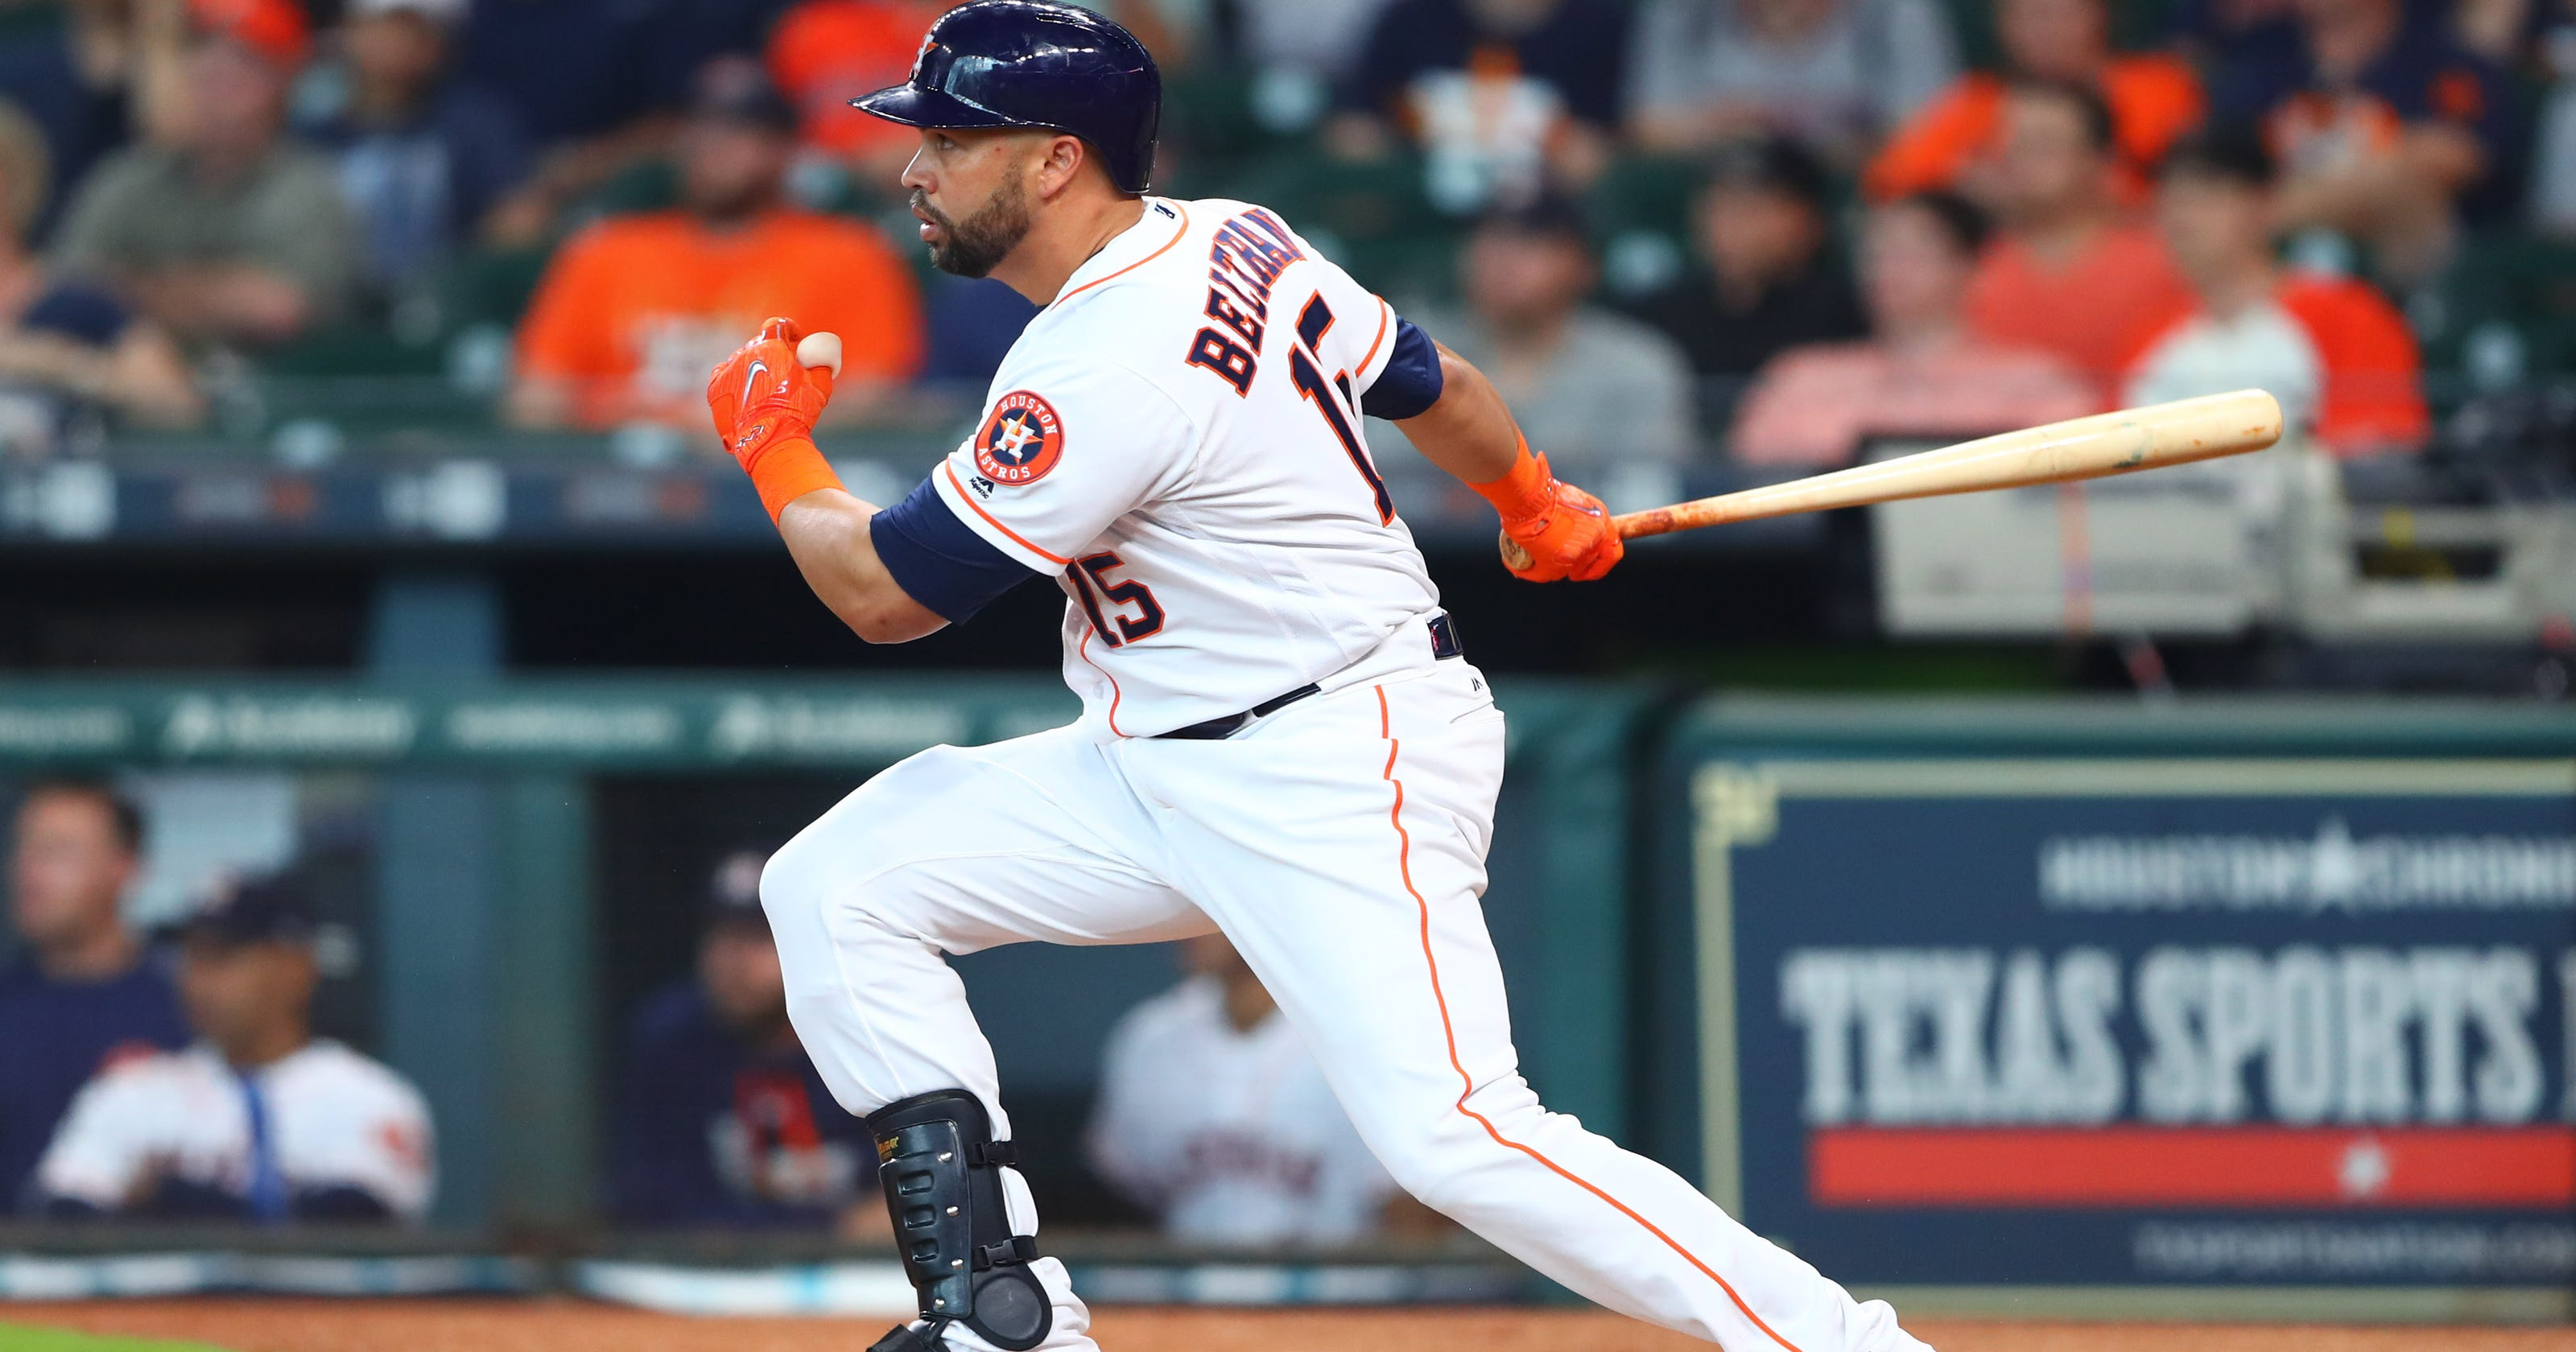 Beltran S First Homer Lifts Astros To Win